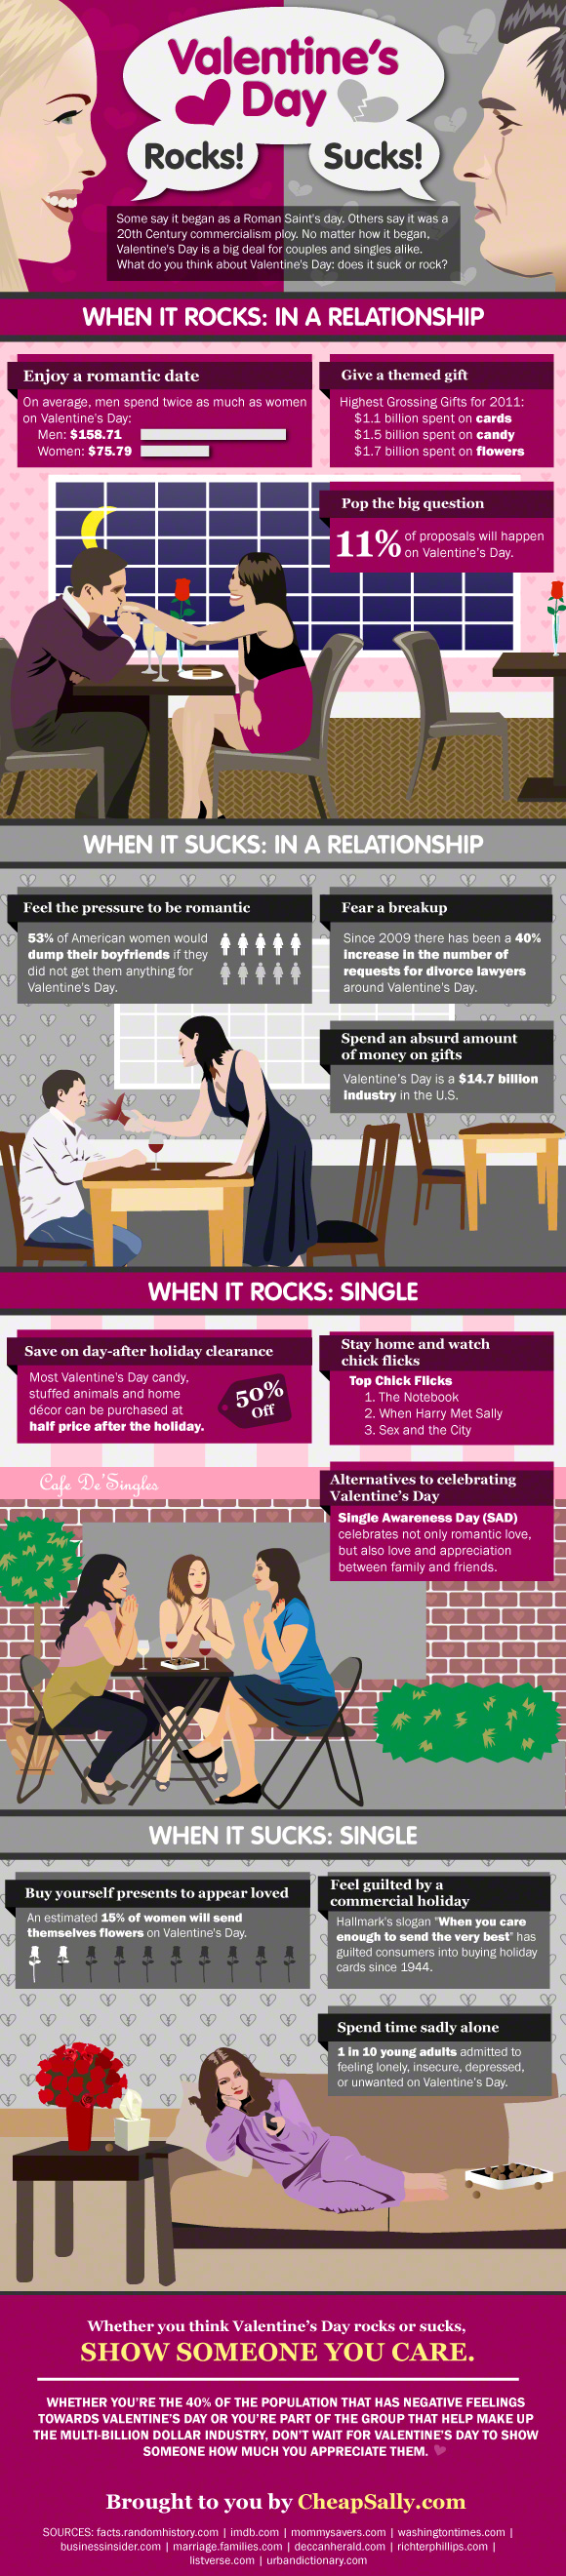 01 cheap-sally-valentines-day-rocks-sucks-infographic